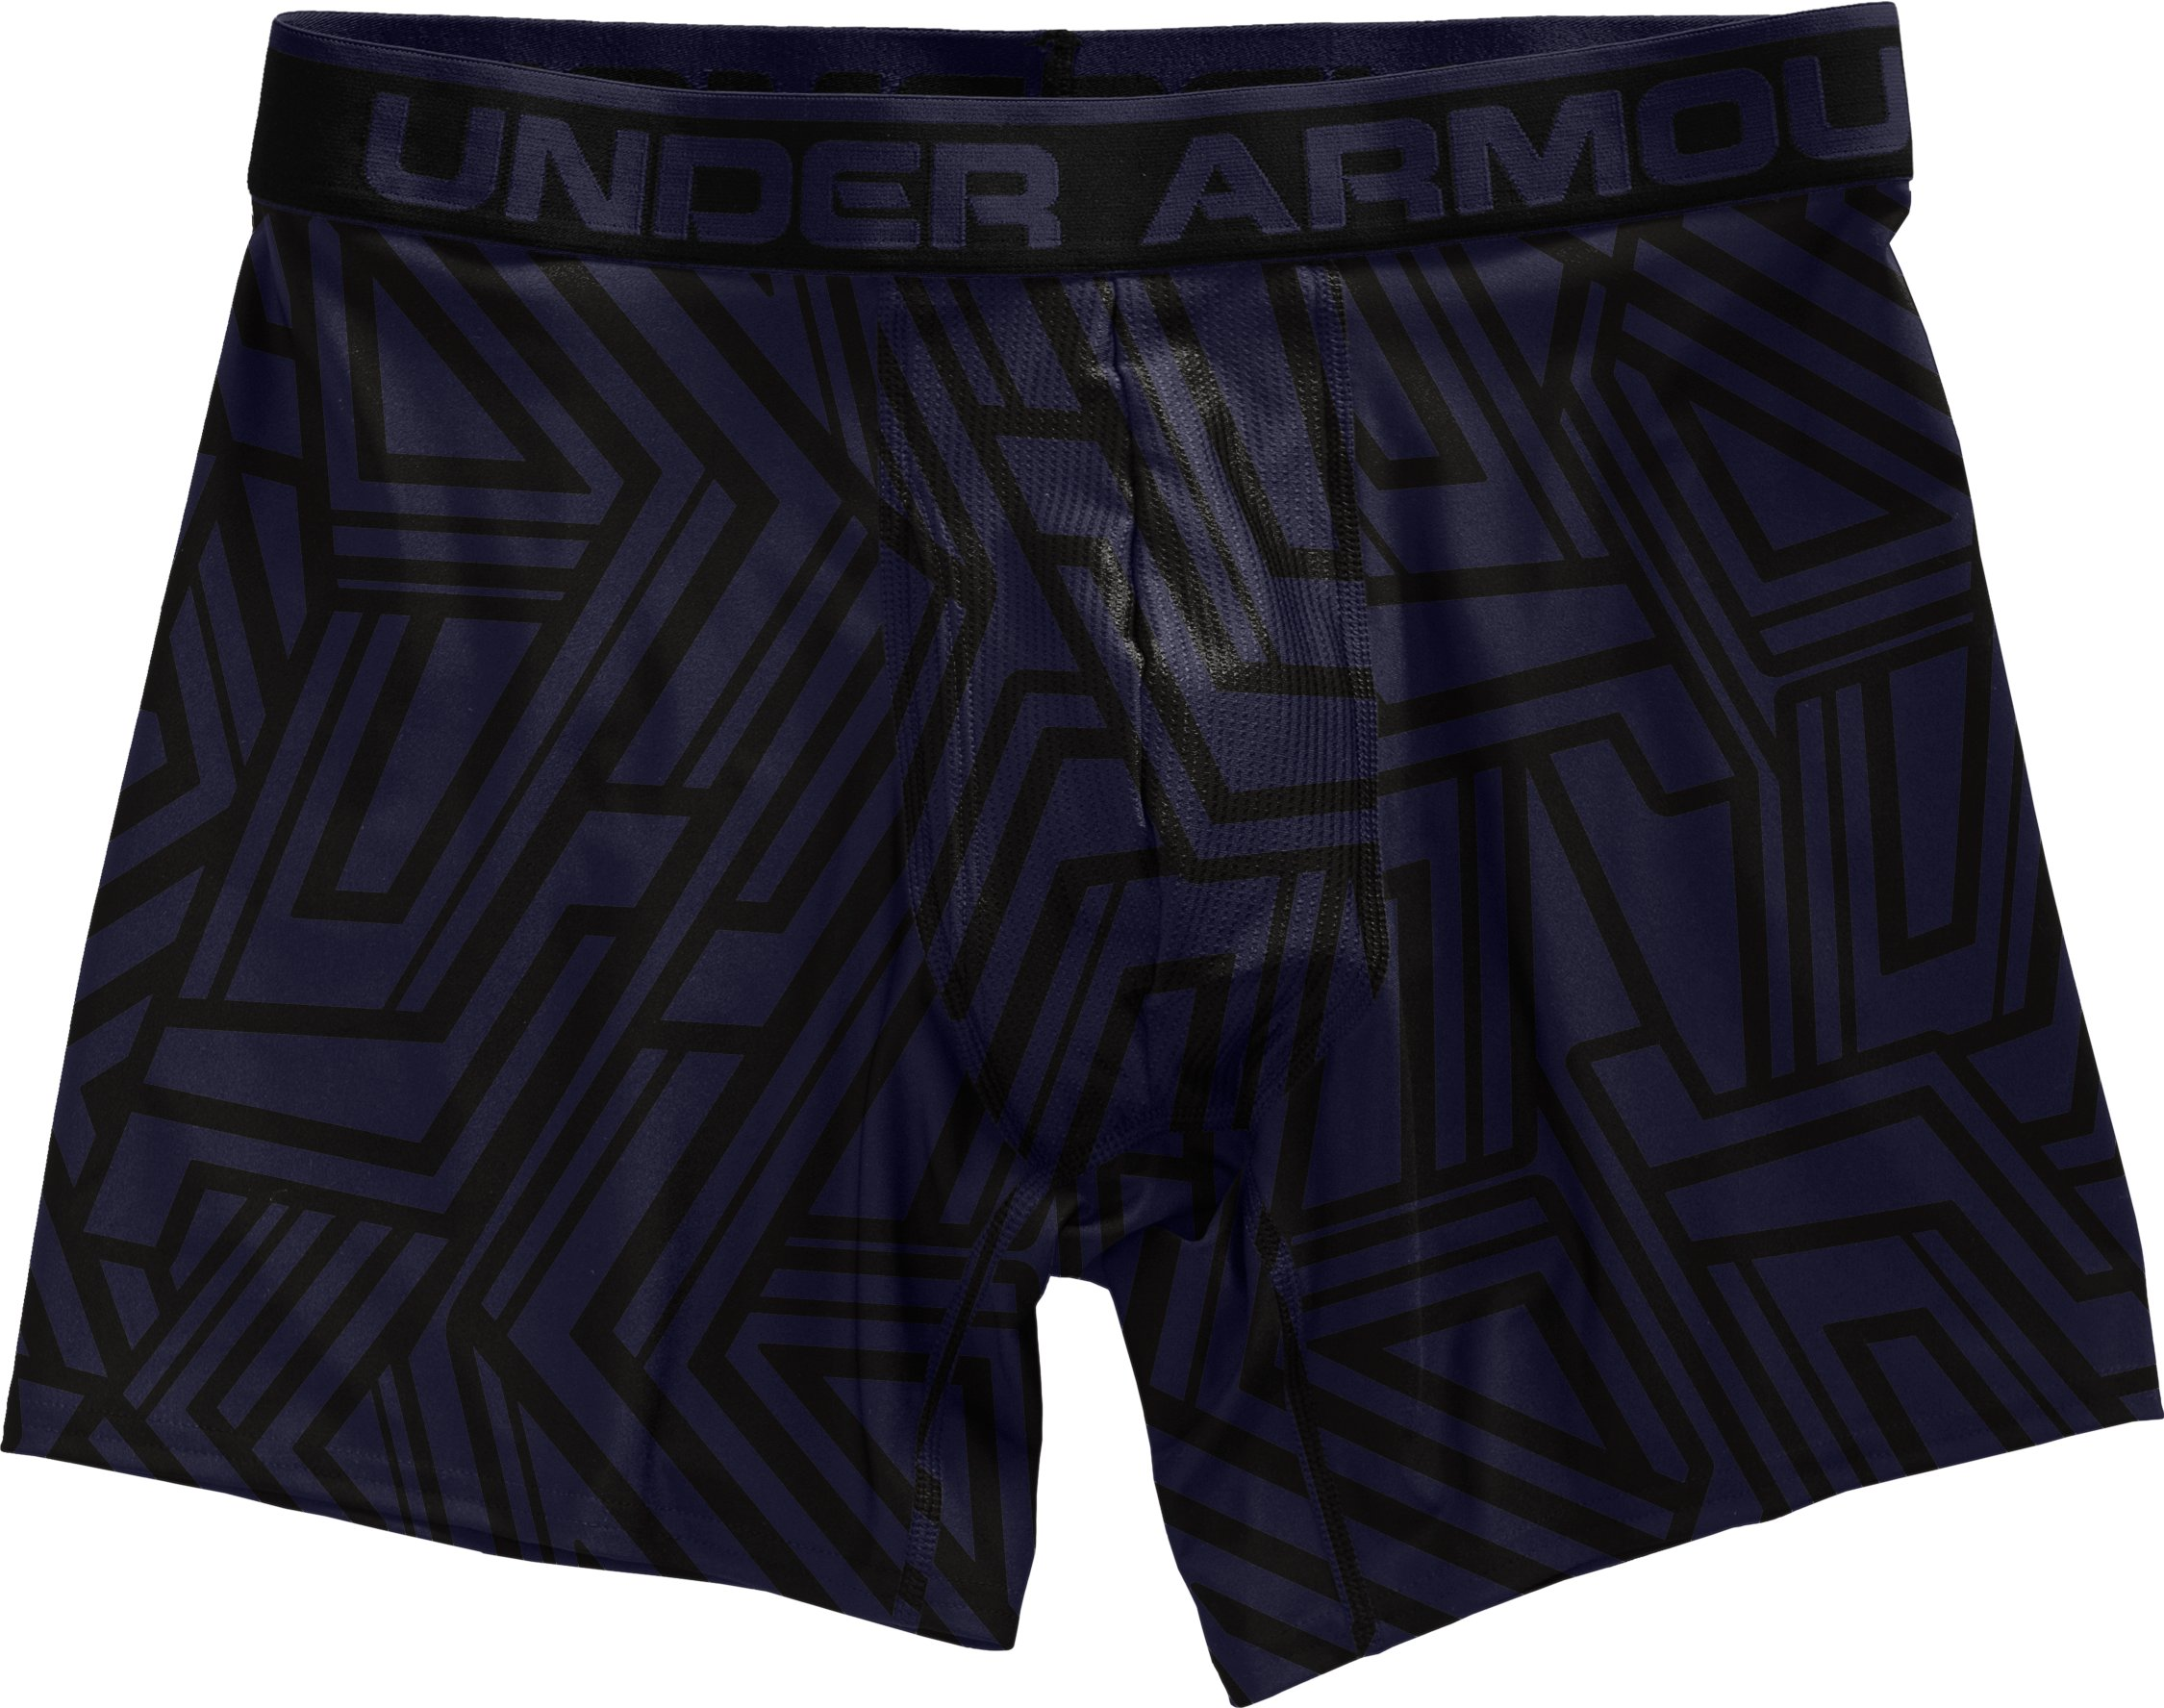 "Men's The Original Printed 6"" Boxerjock® Boxer Briefs, Midnight Navy, Laydown"